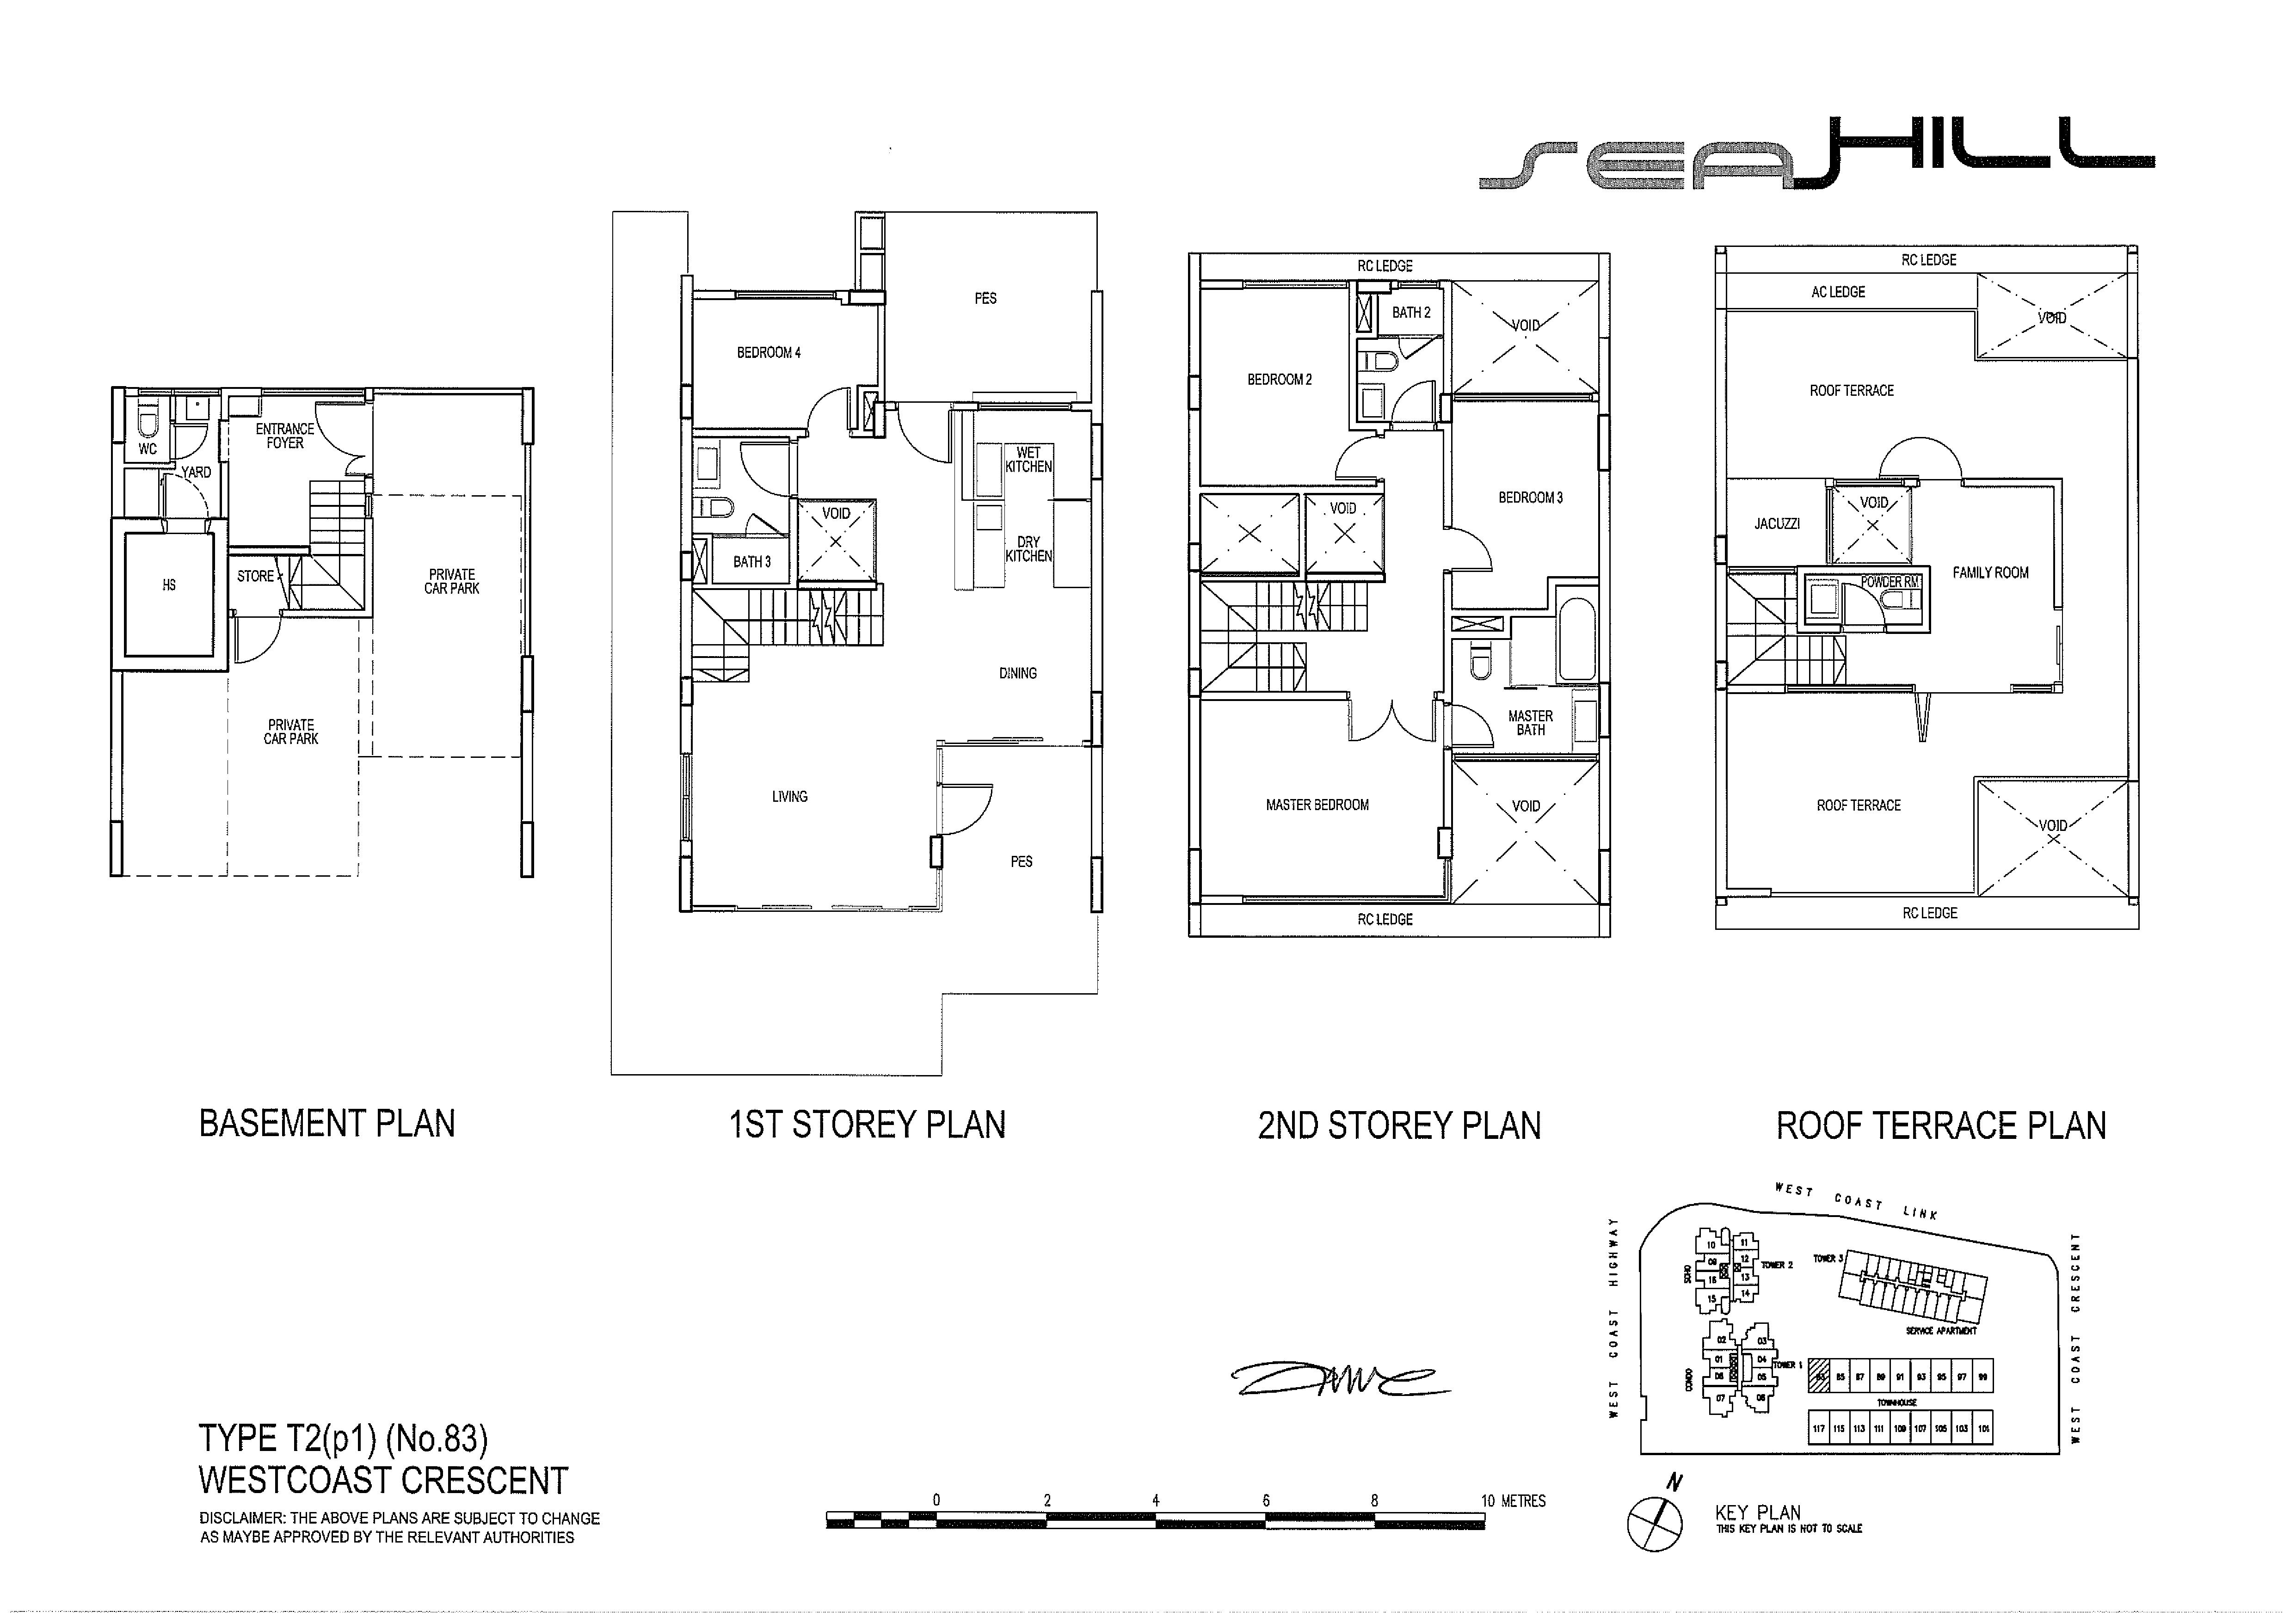 Seahill 4 Bedroom Townhouse Type T2(p1) (No.83) Floor Plans